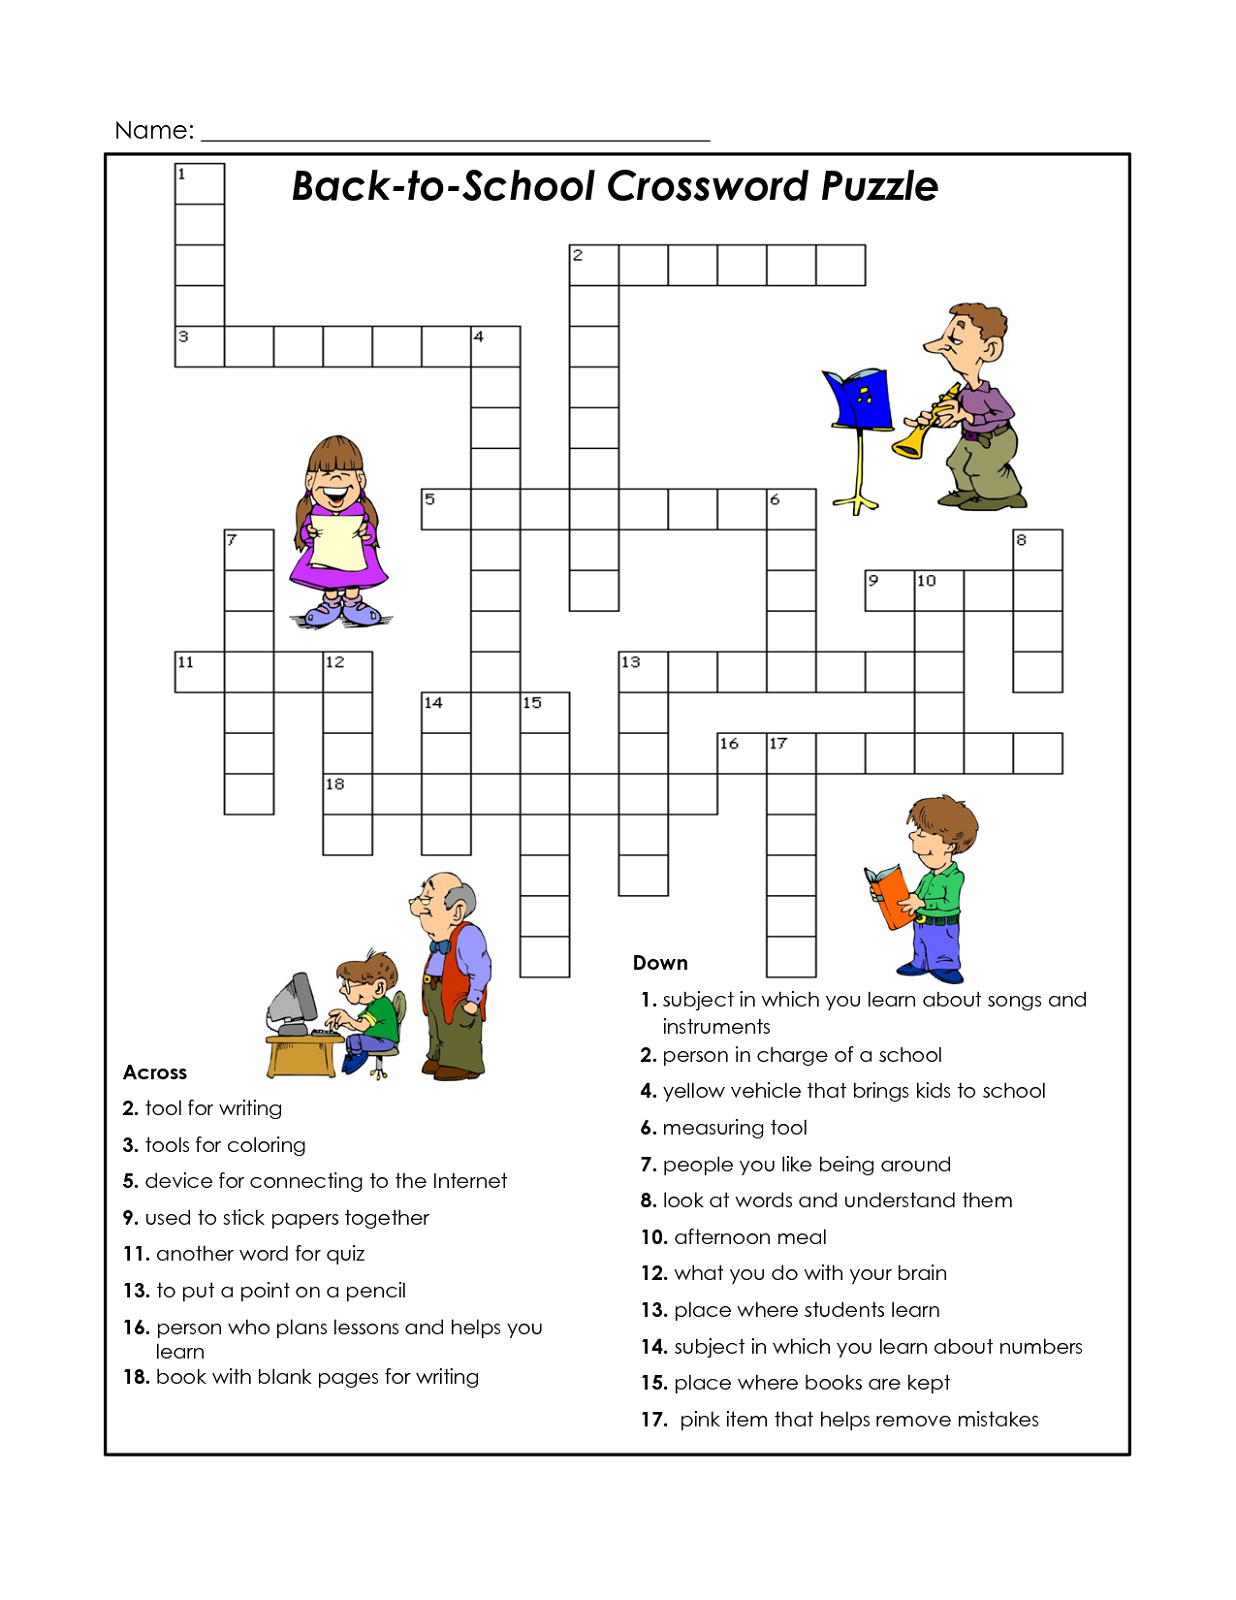 easy-crossword-puzzles-for-kids-school